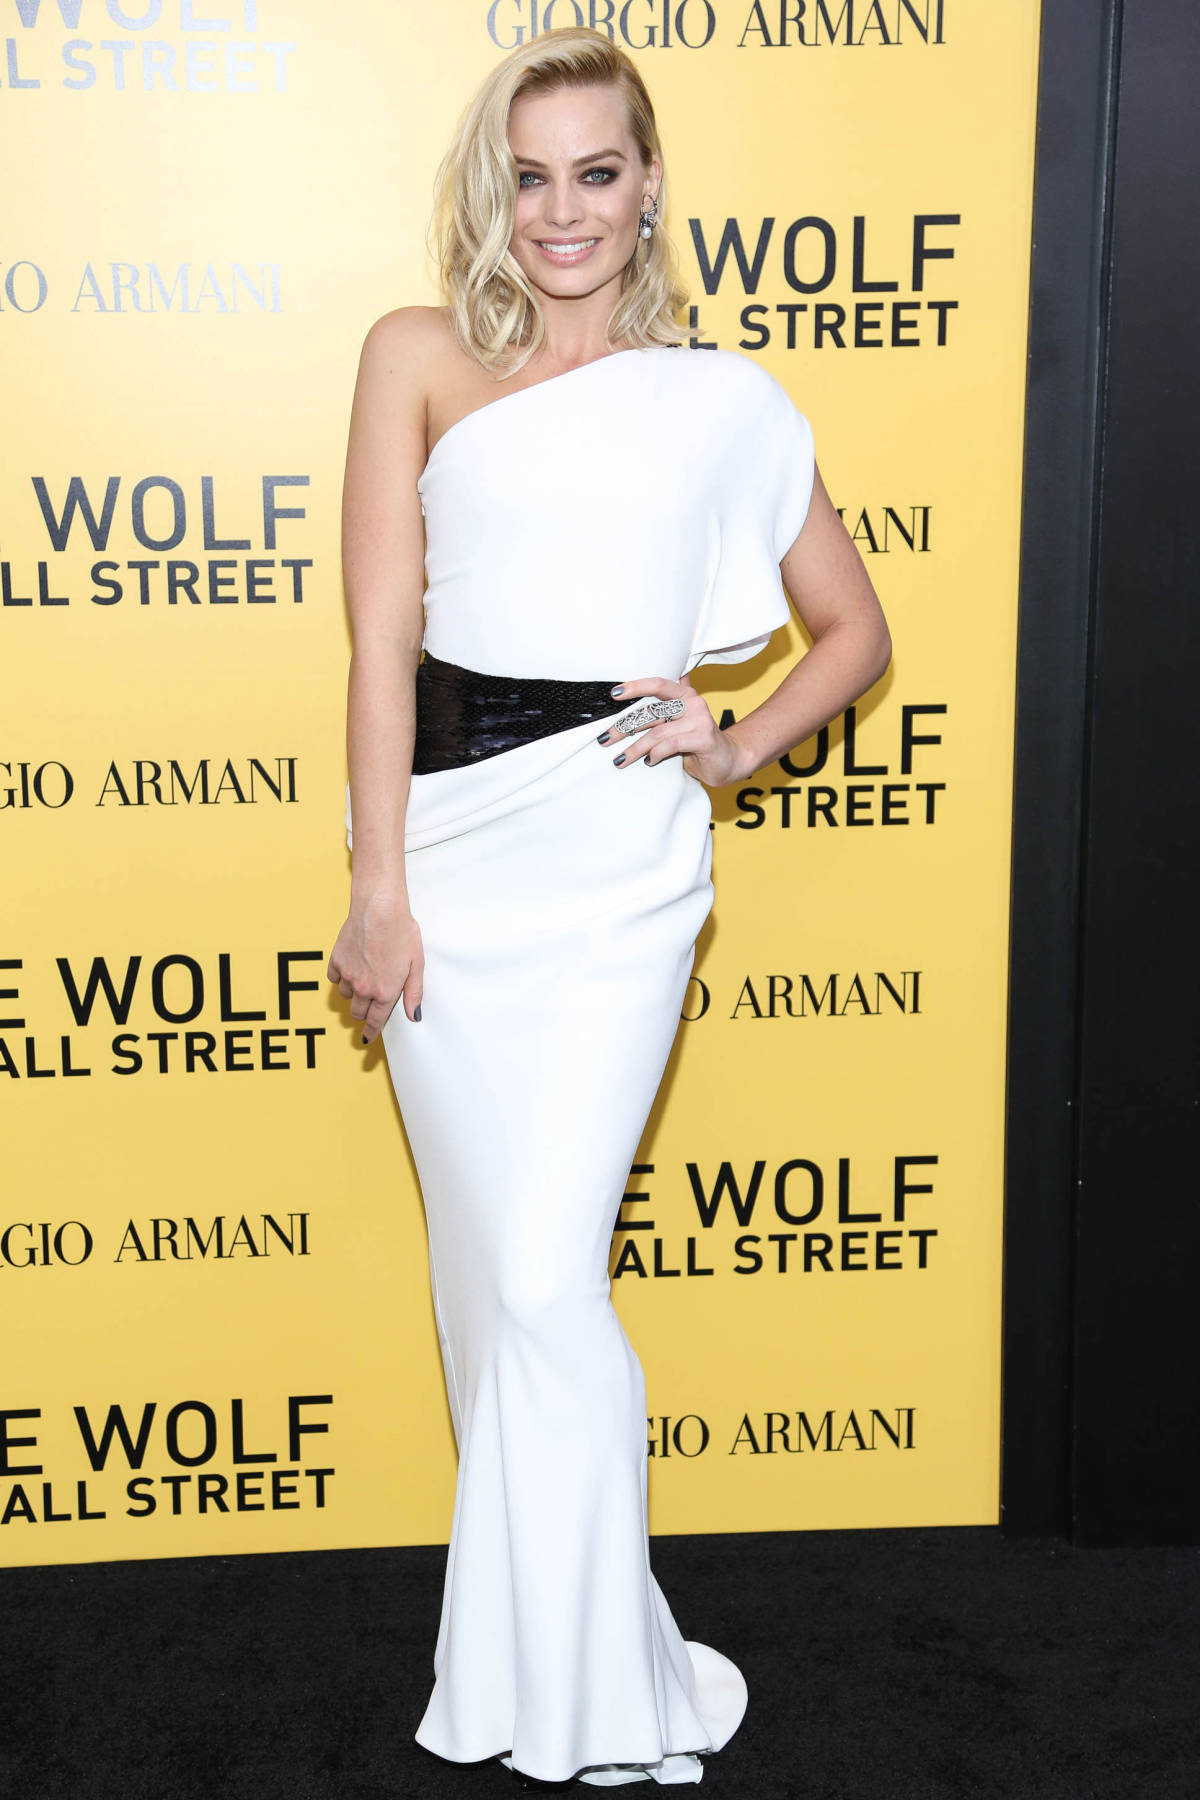 Margot Robbie Turned The City Sidewalk Into A Runway This